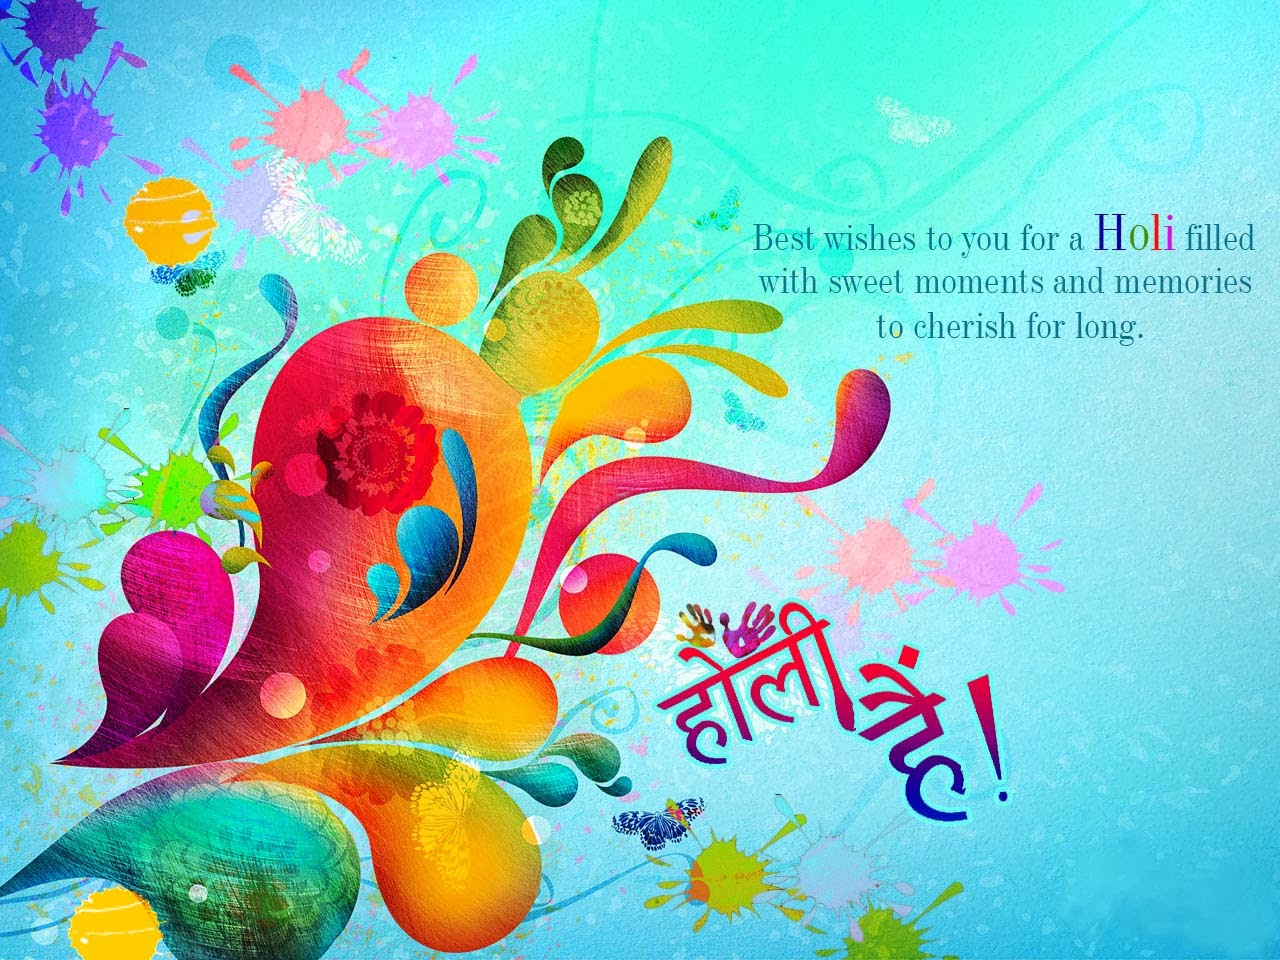 Best wishes to you for a Holi festival hd